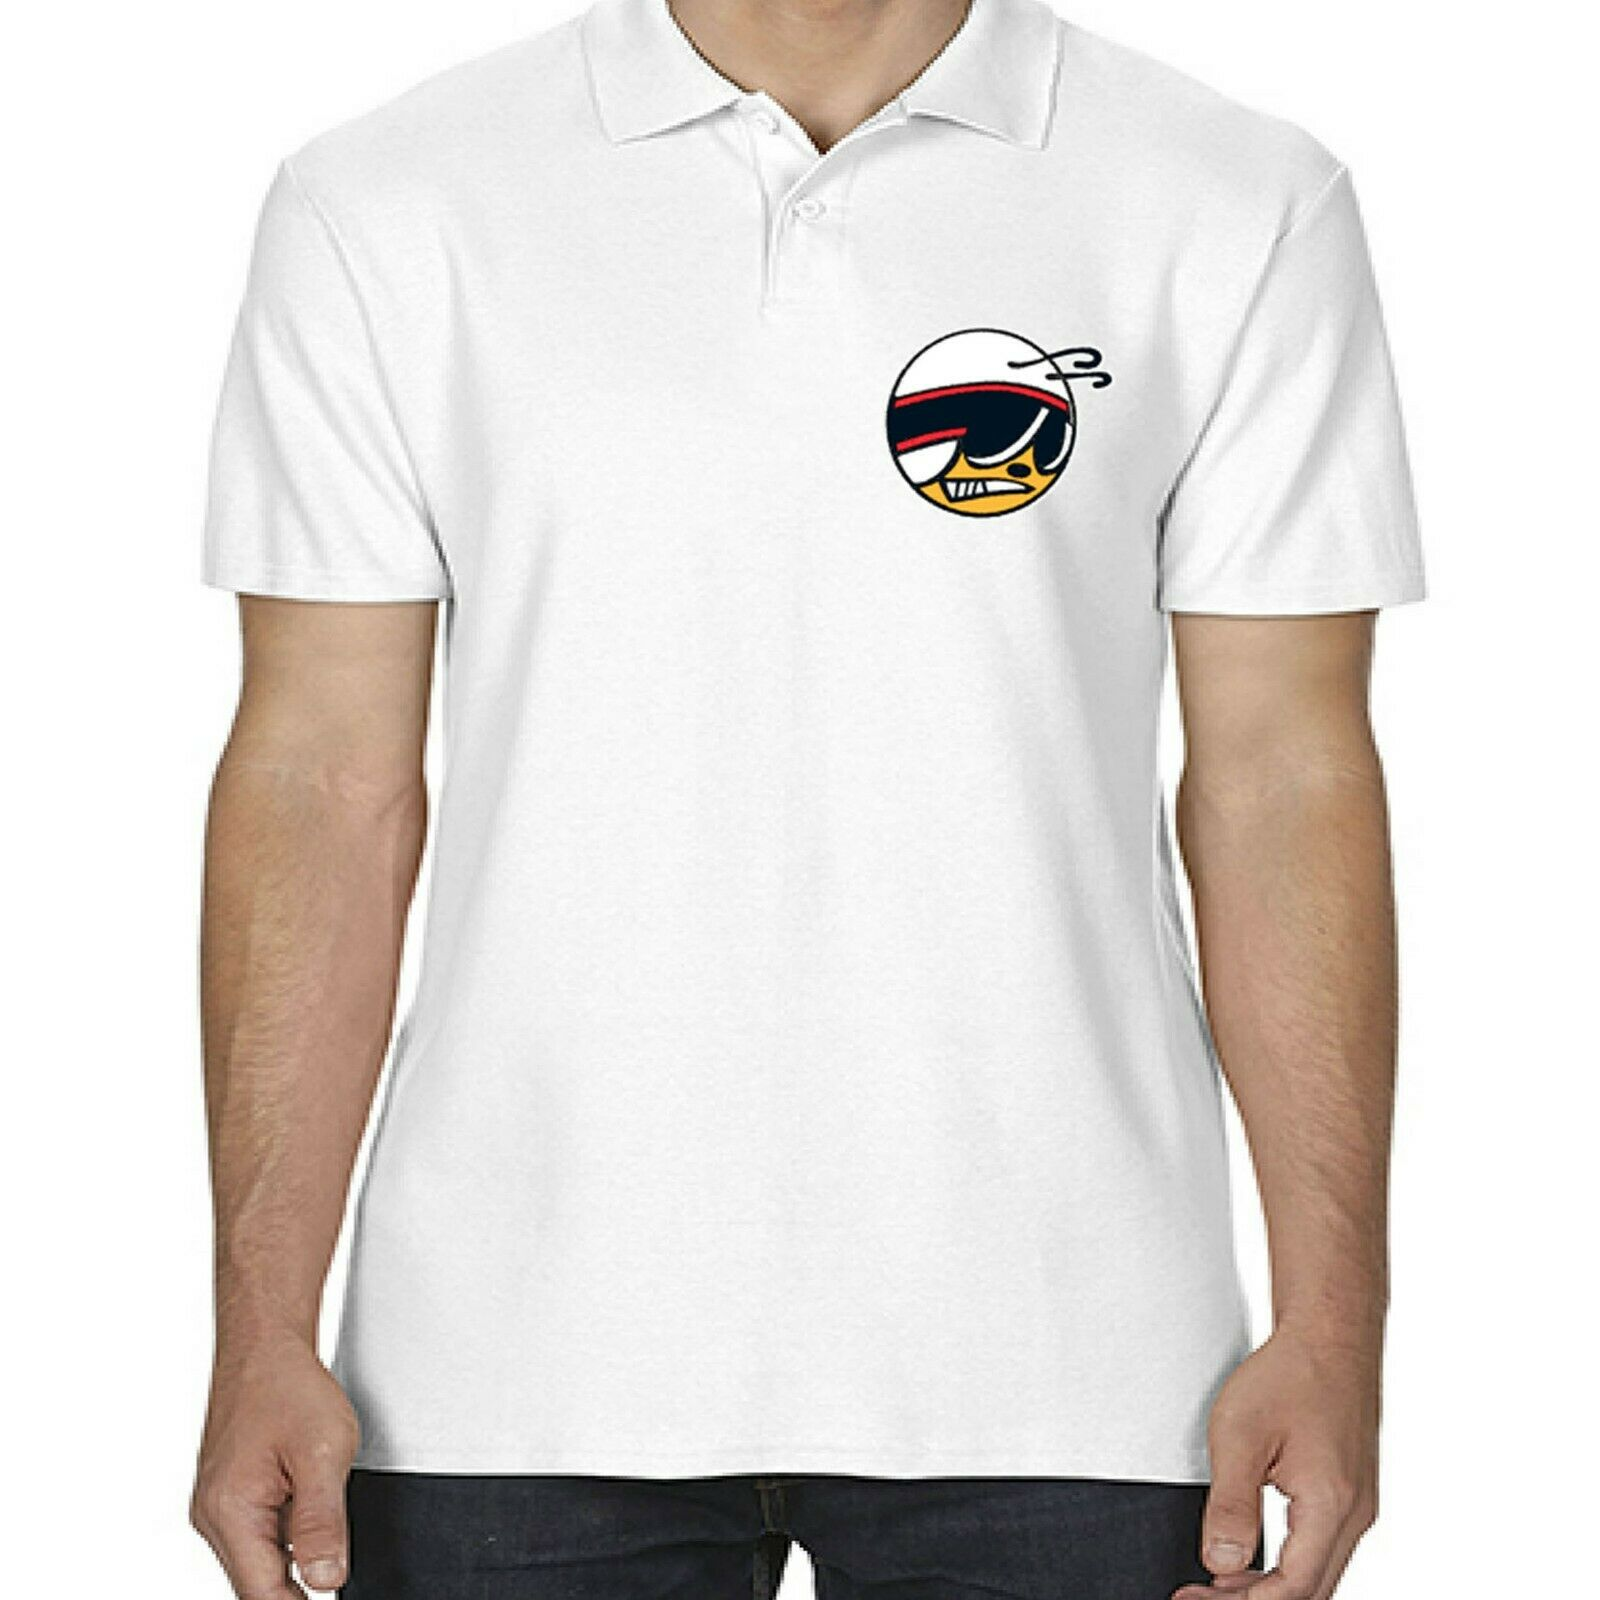 3c41f396 Mens Licensed Dodge Super Bee Polo Shirt American Classic V8 Muscle ...